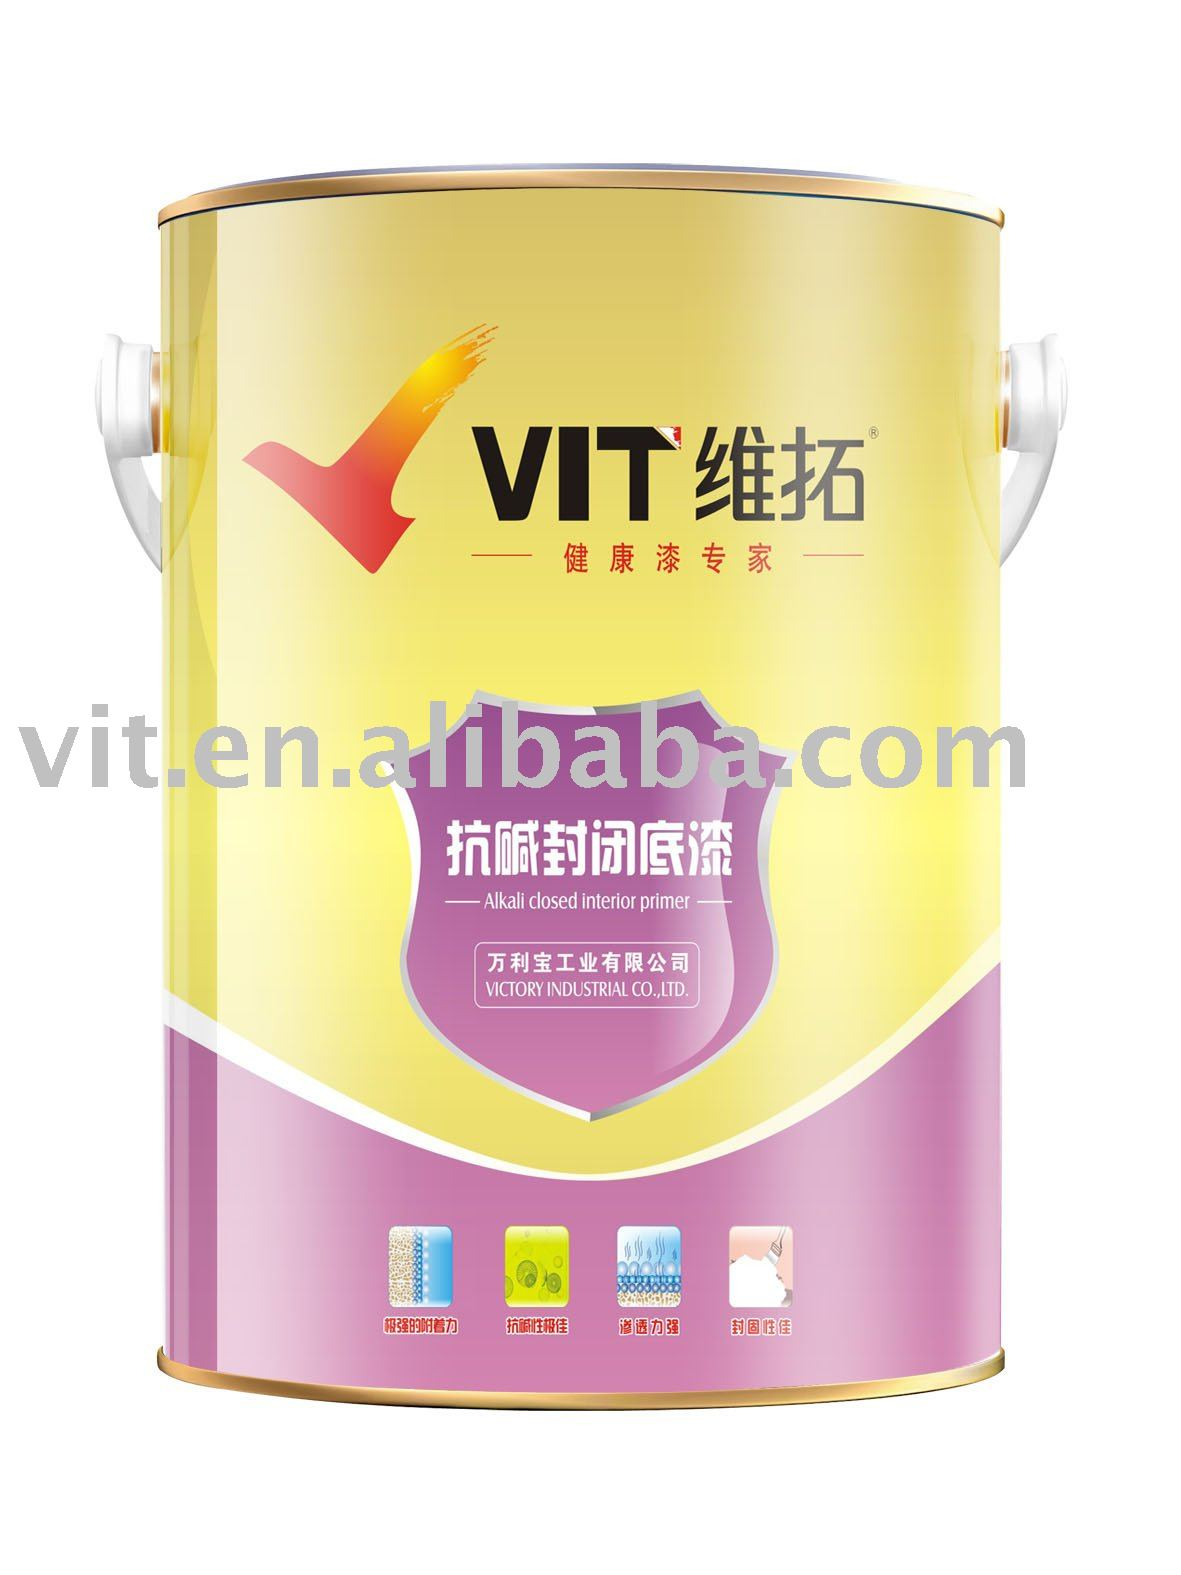 VIT Anti-Alkali closed Interior Primer (SWA-0011 )